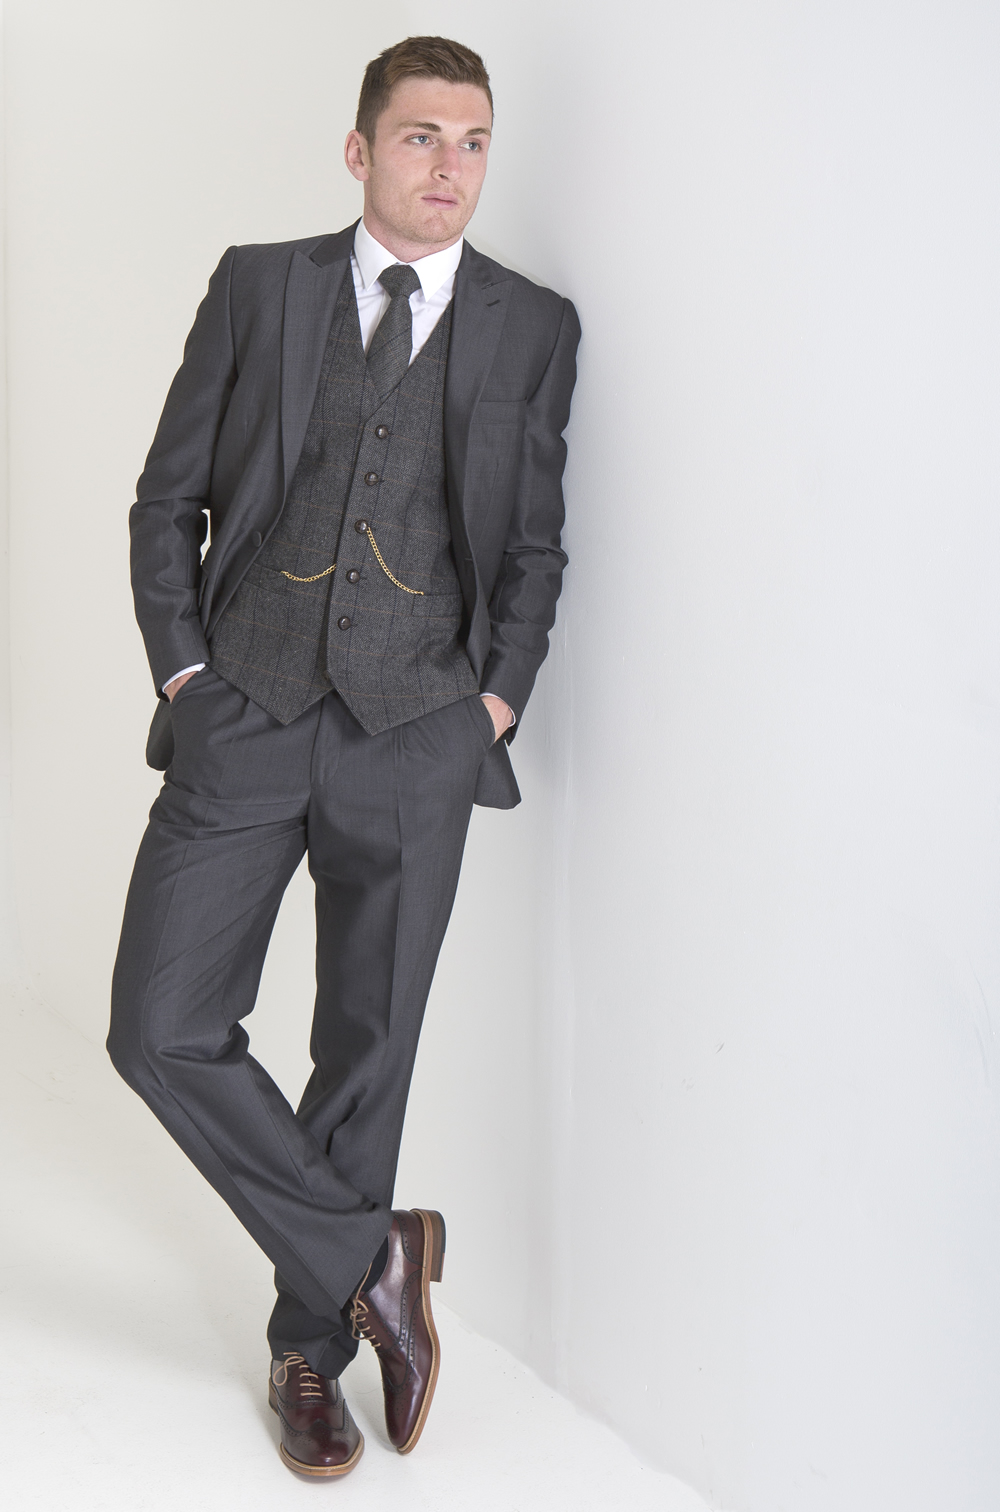 Your Complete Guide to Affordable Suits. All in all, finding the very best of cheap tailored suits for men shouldn't be a challenge. Best Suit Brands. This is a great option for those who want to show off their physique or are too slim for the other suit cuts. Your Complete Guide to Affordable Shirts.